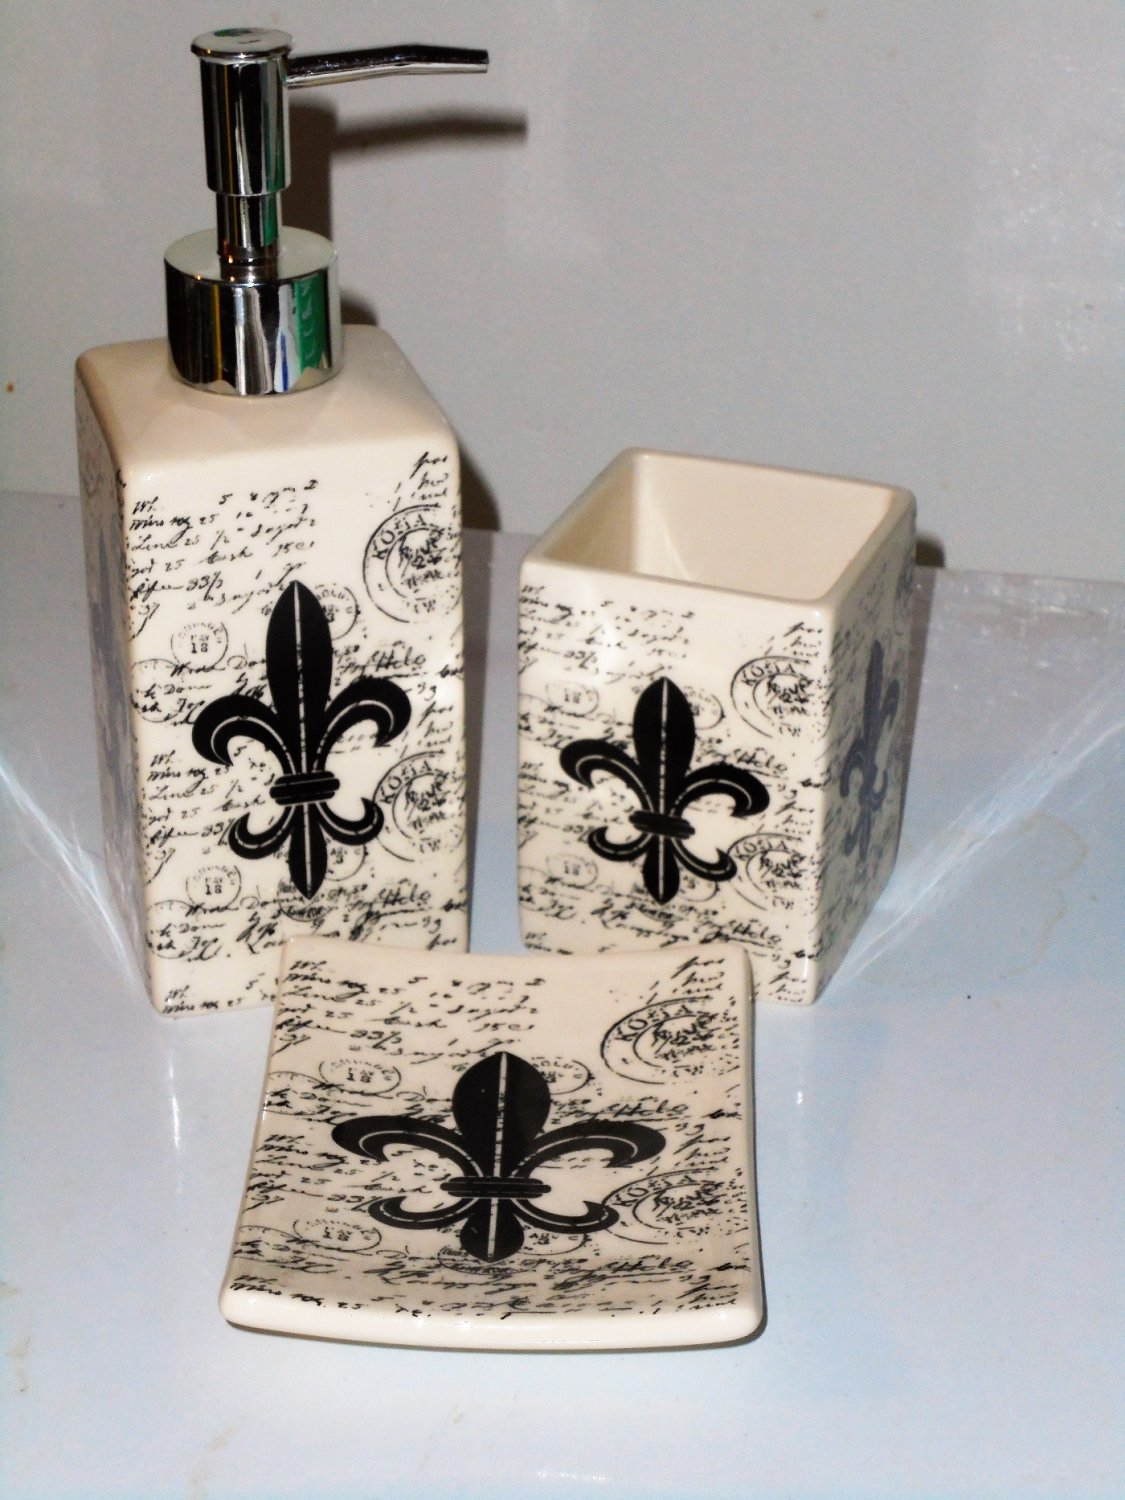 Fleur Di Lis Bathroom French Fleur De Lis Bath Accessories Set Ceramic